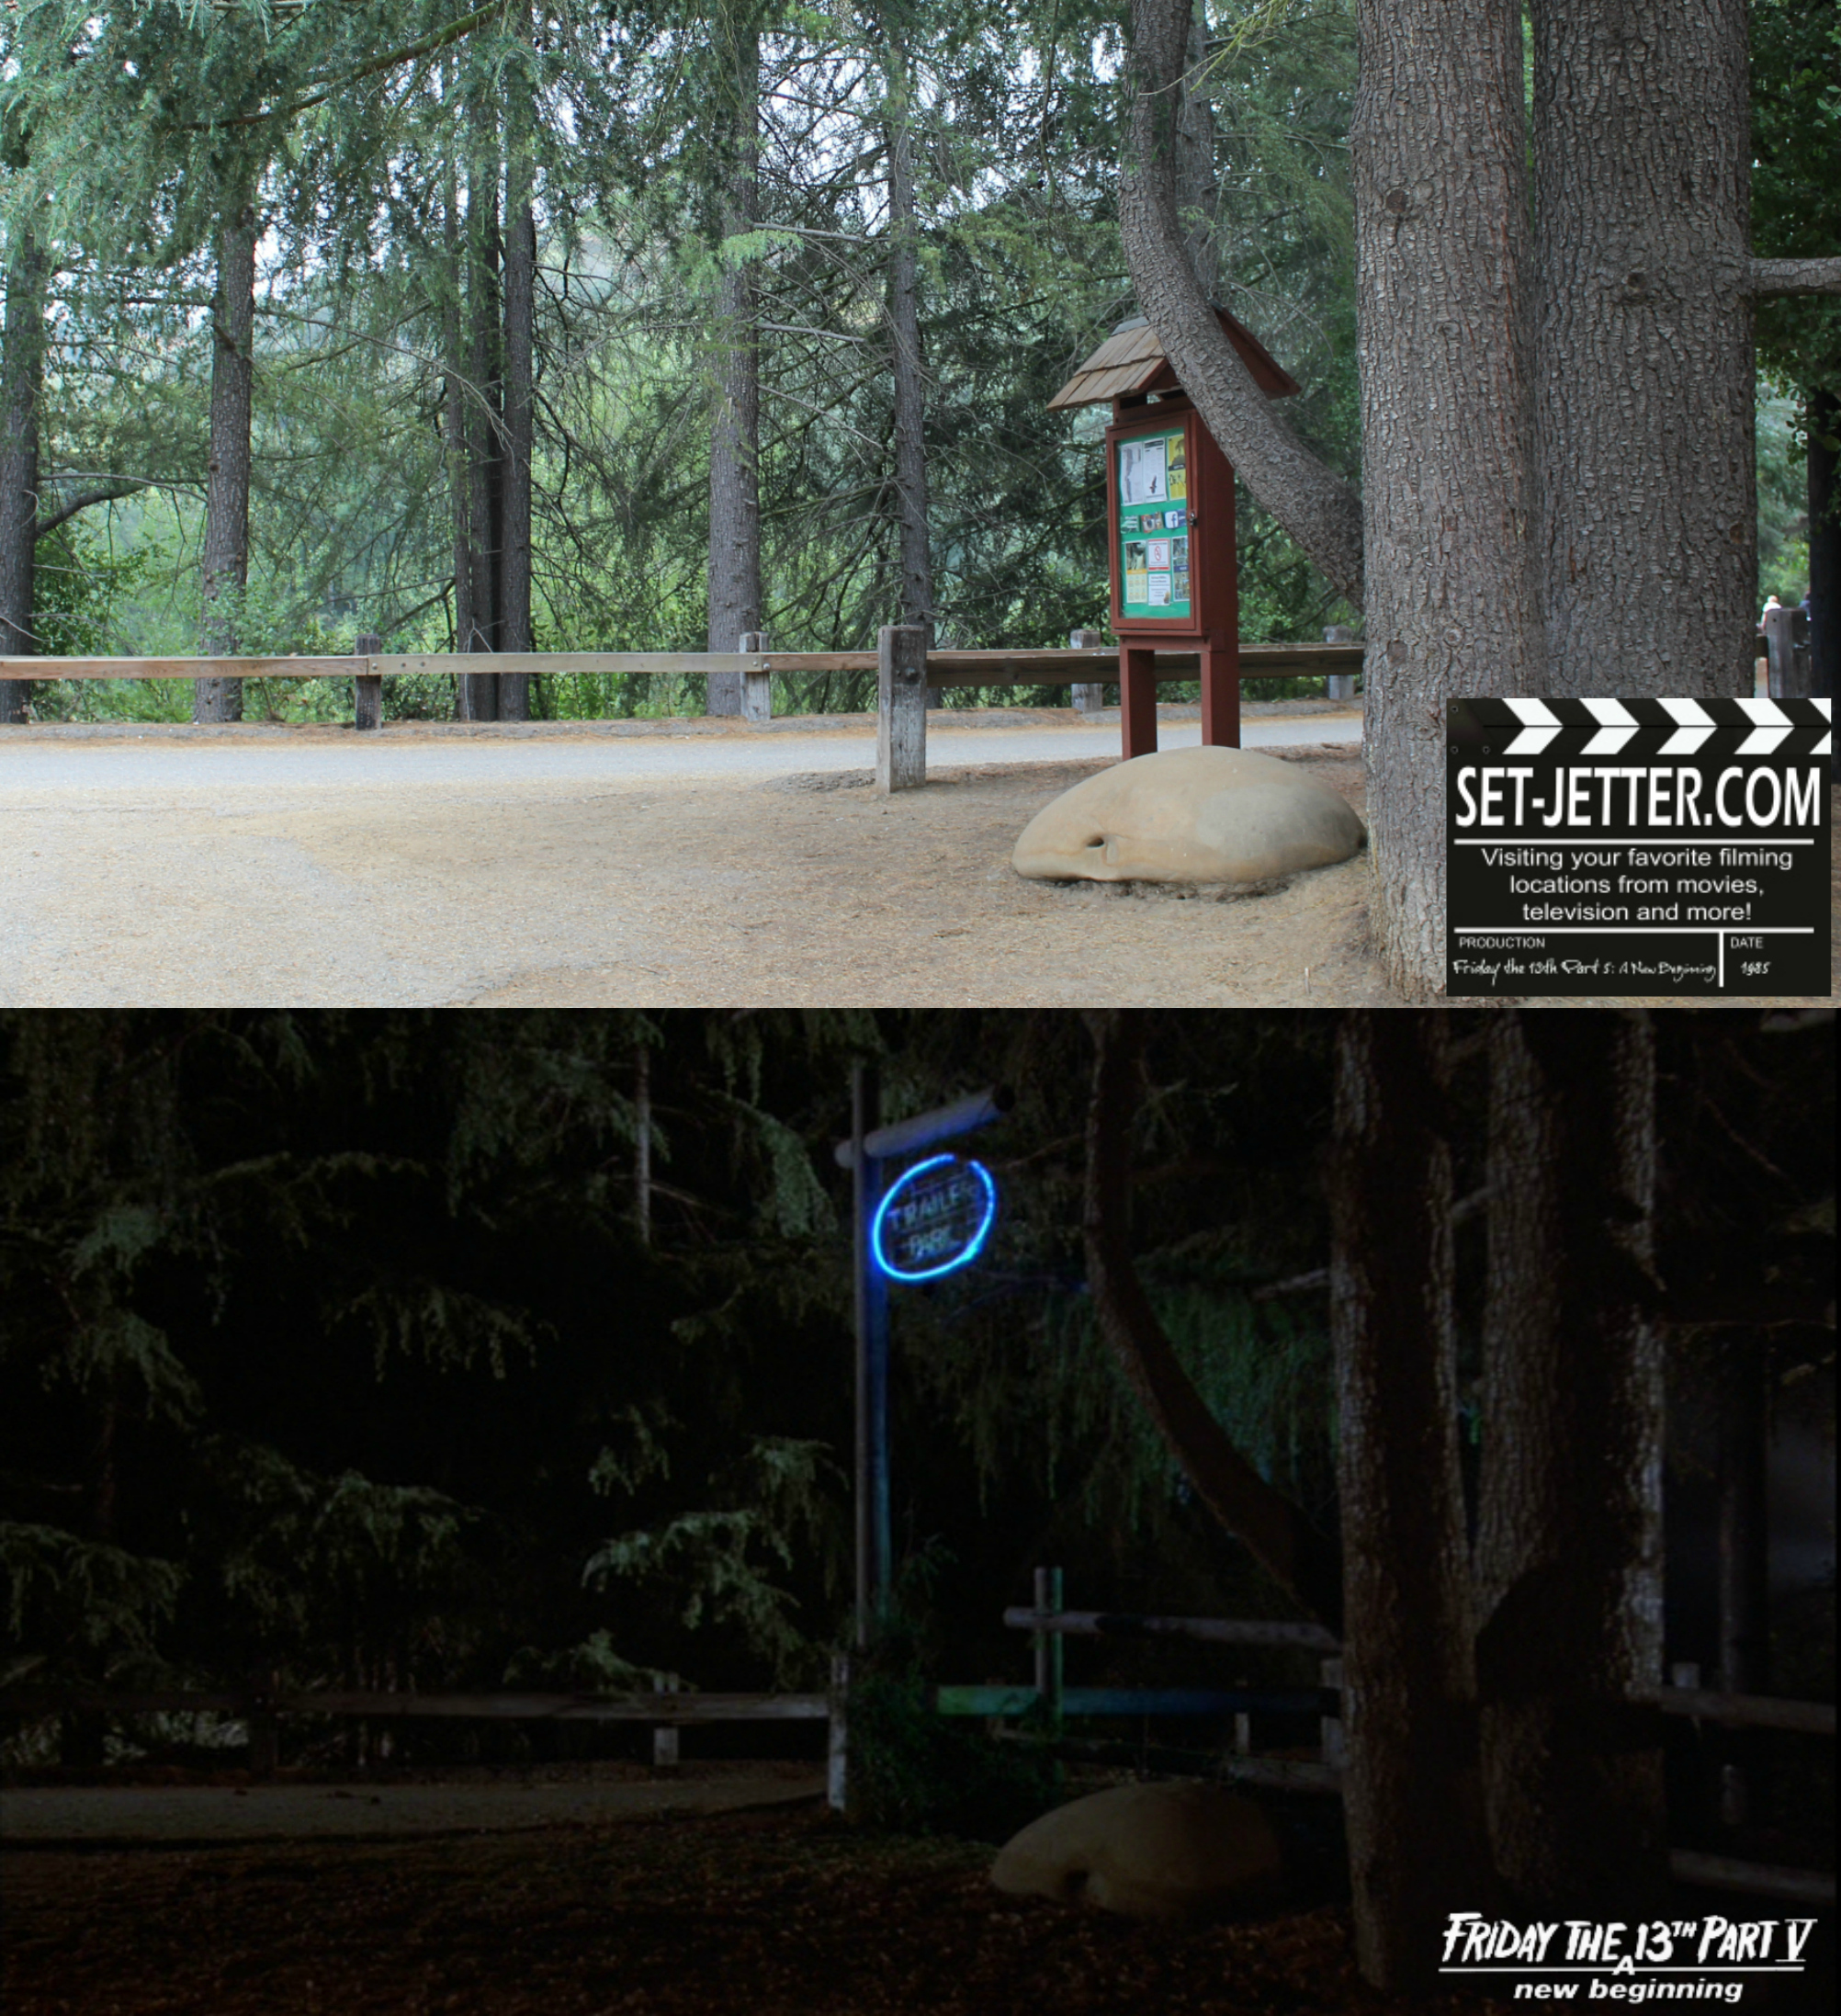 Friday the 13th Part V comparison 37.jpg